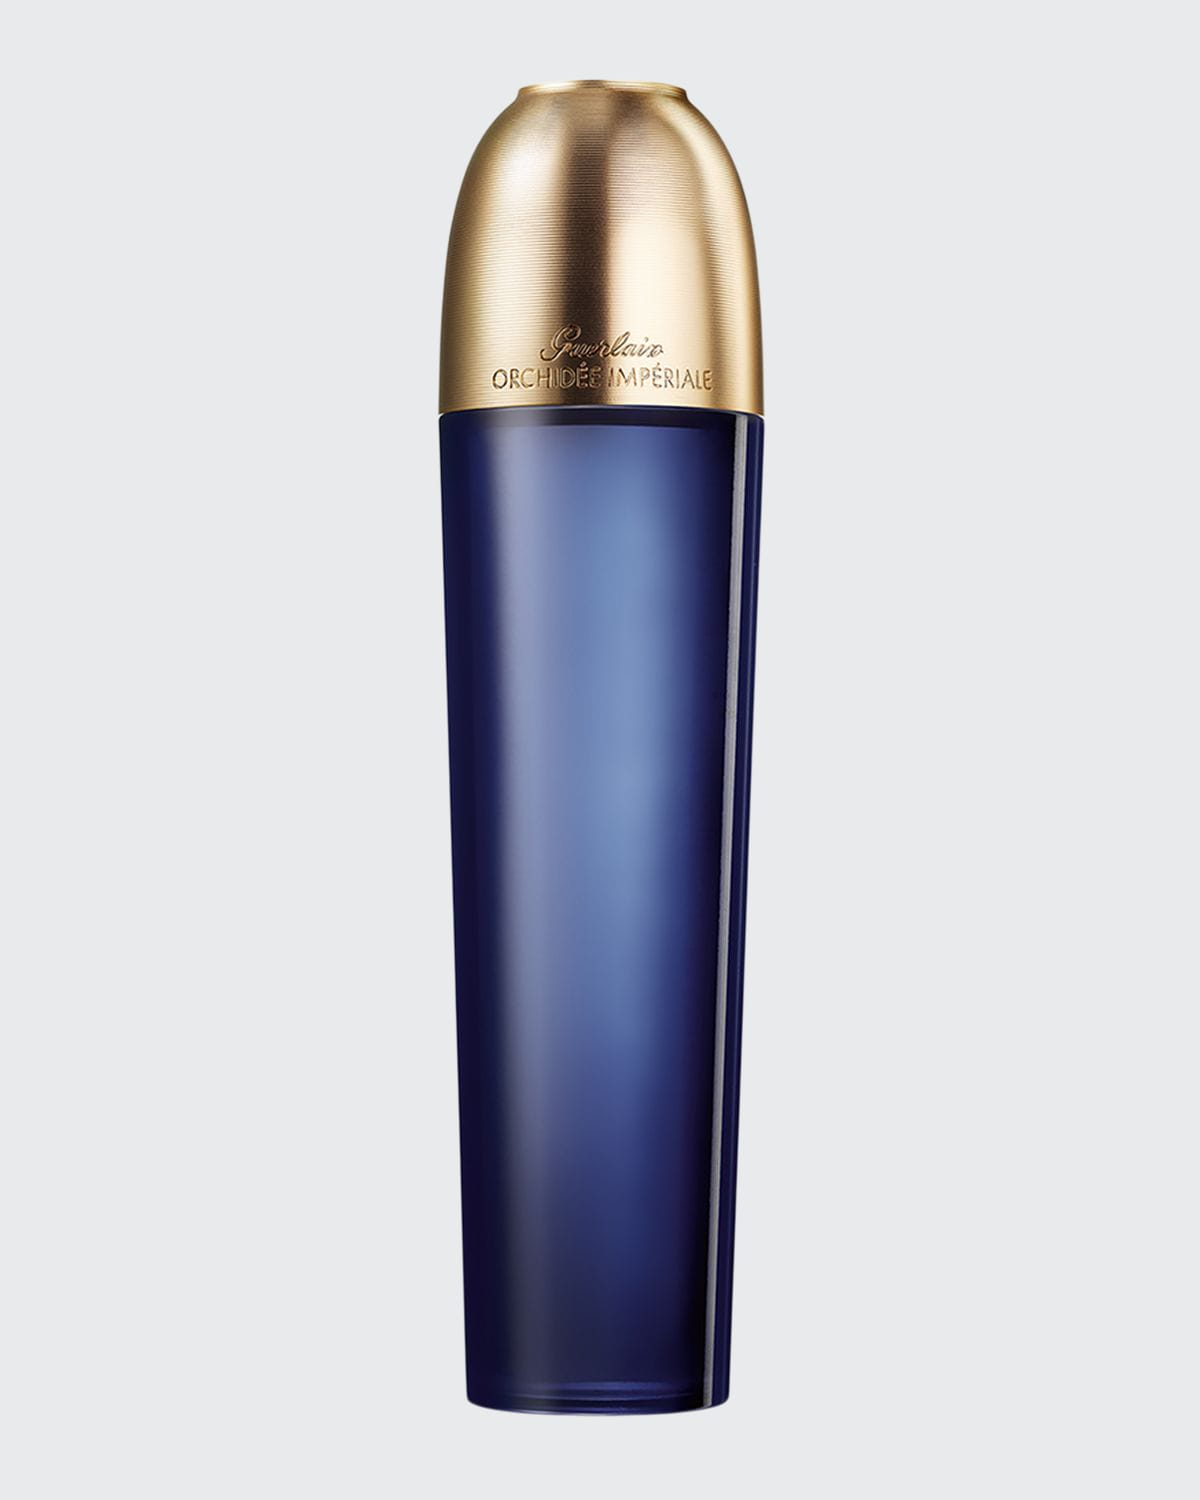 4.2 oz. Orchidee Imperiale Anti-Aging Essence-in-Lotion Toner